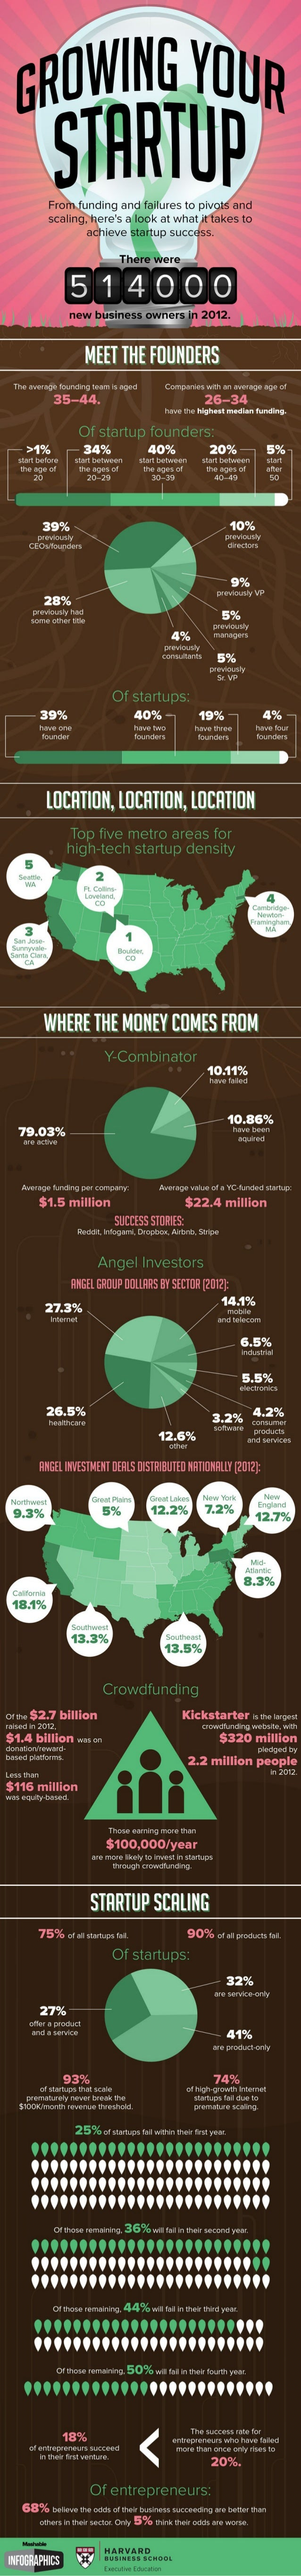 Startup Success By the Numbers